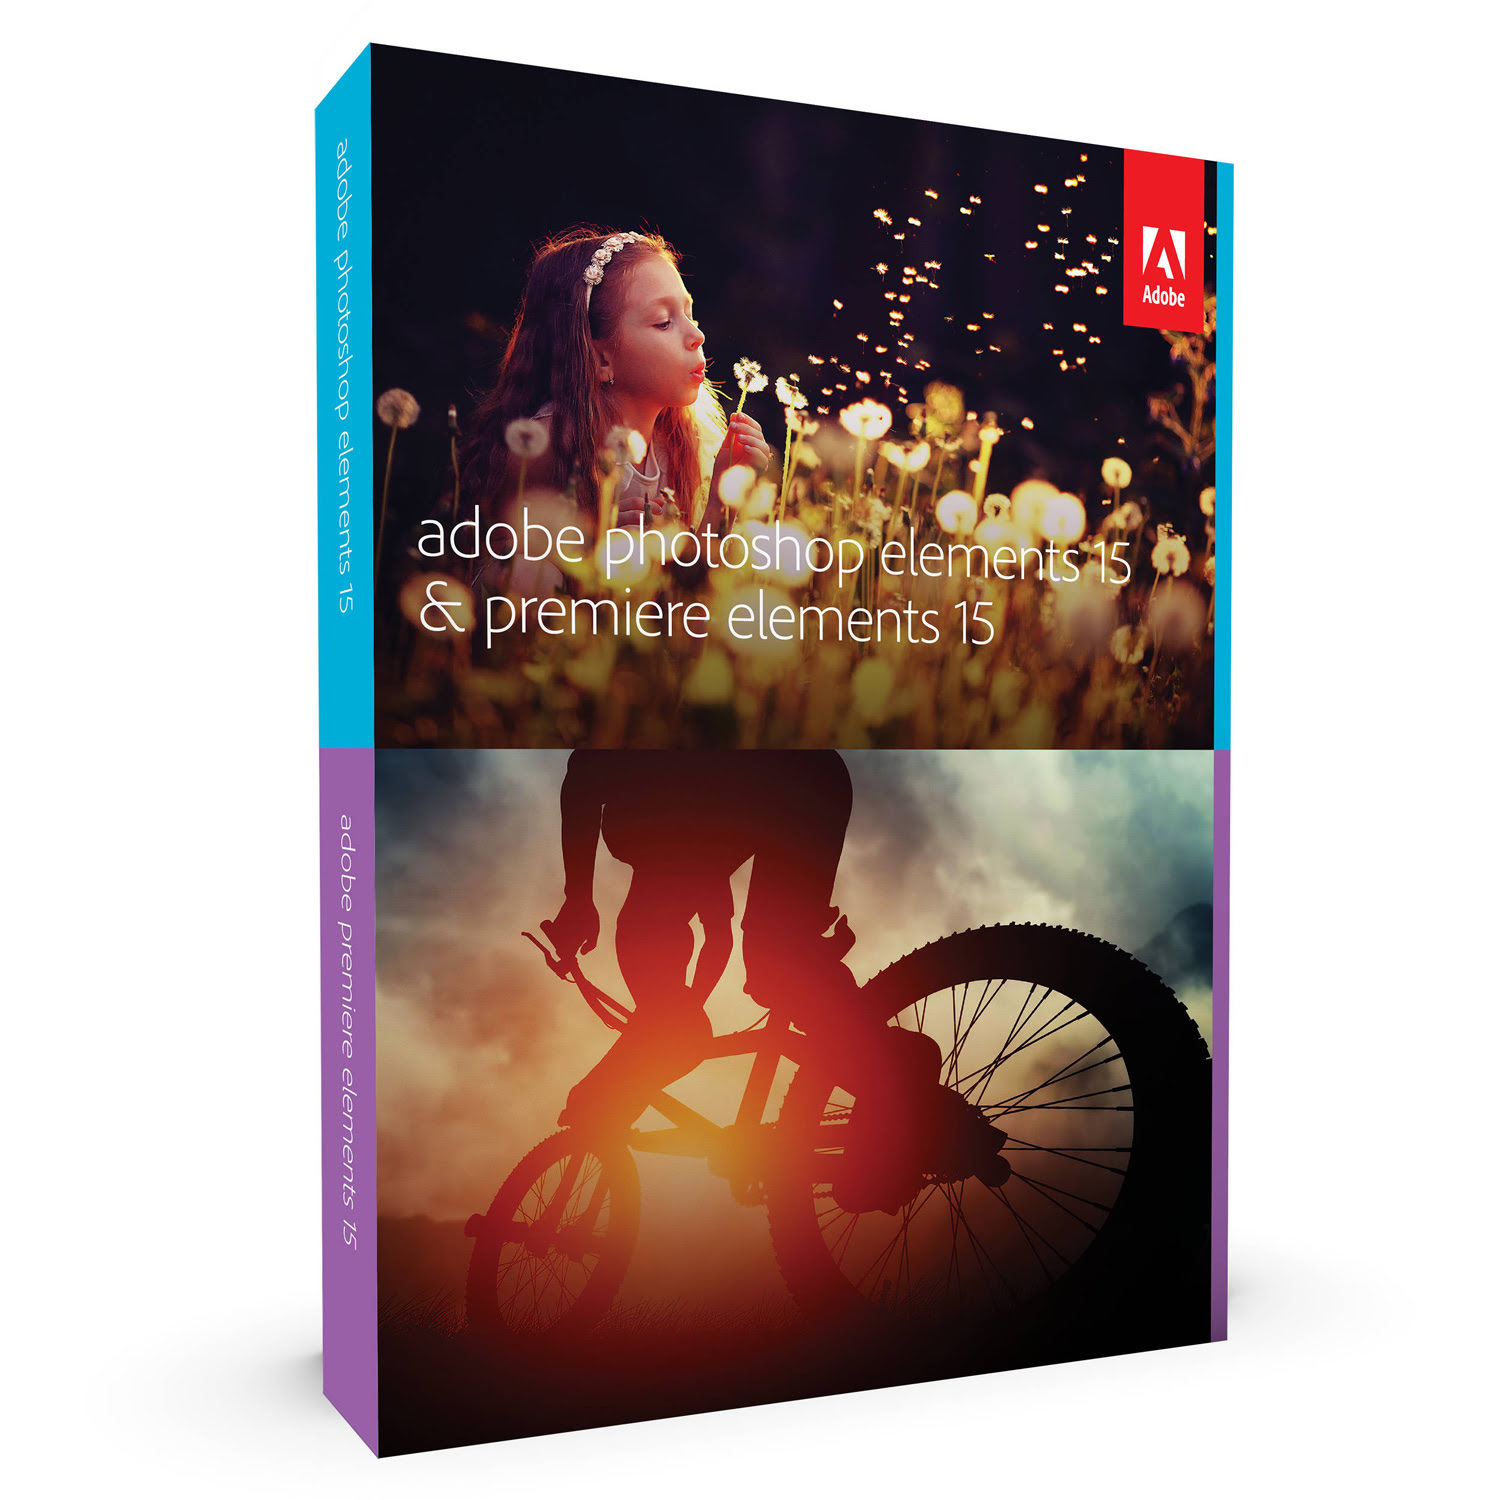 Adobe Photoshop Elements 15 + Premiere Elements 15 - Logiciel application - 0